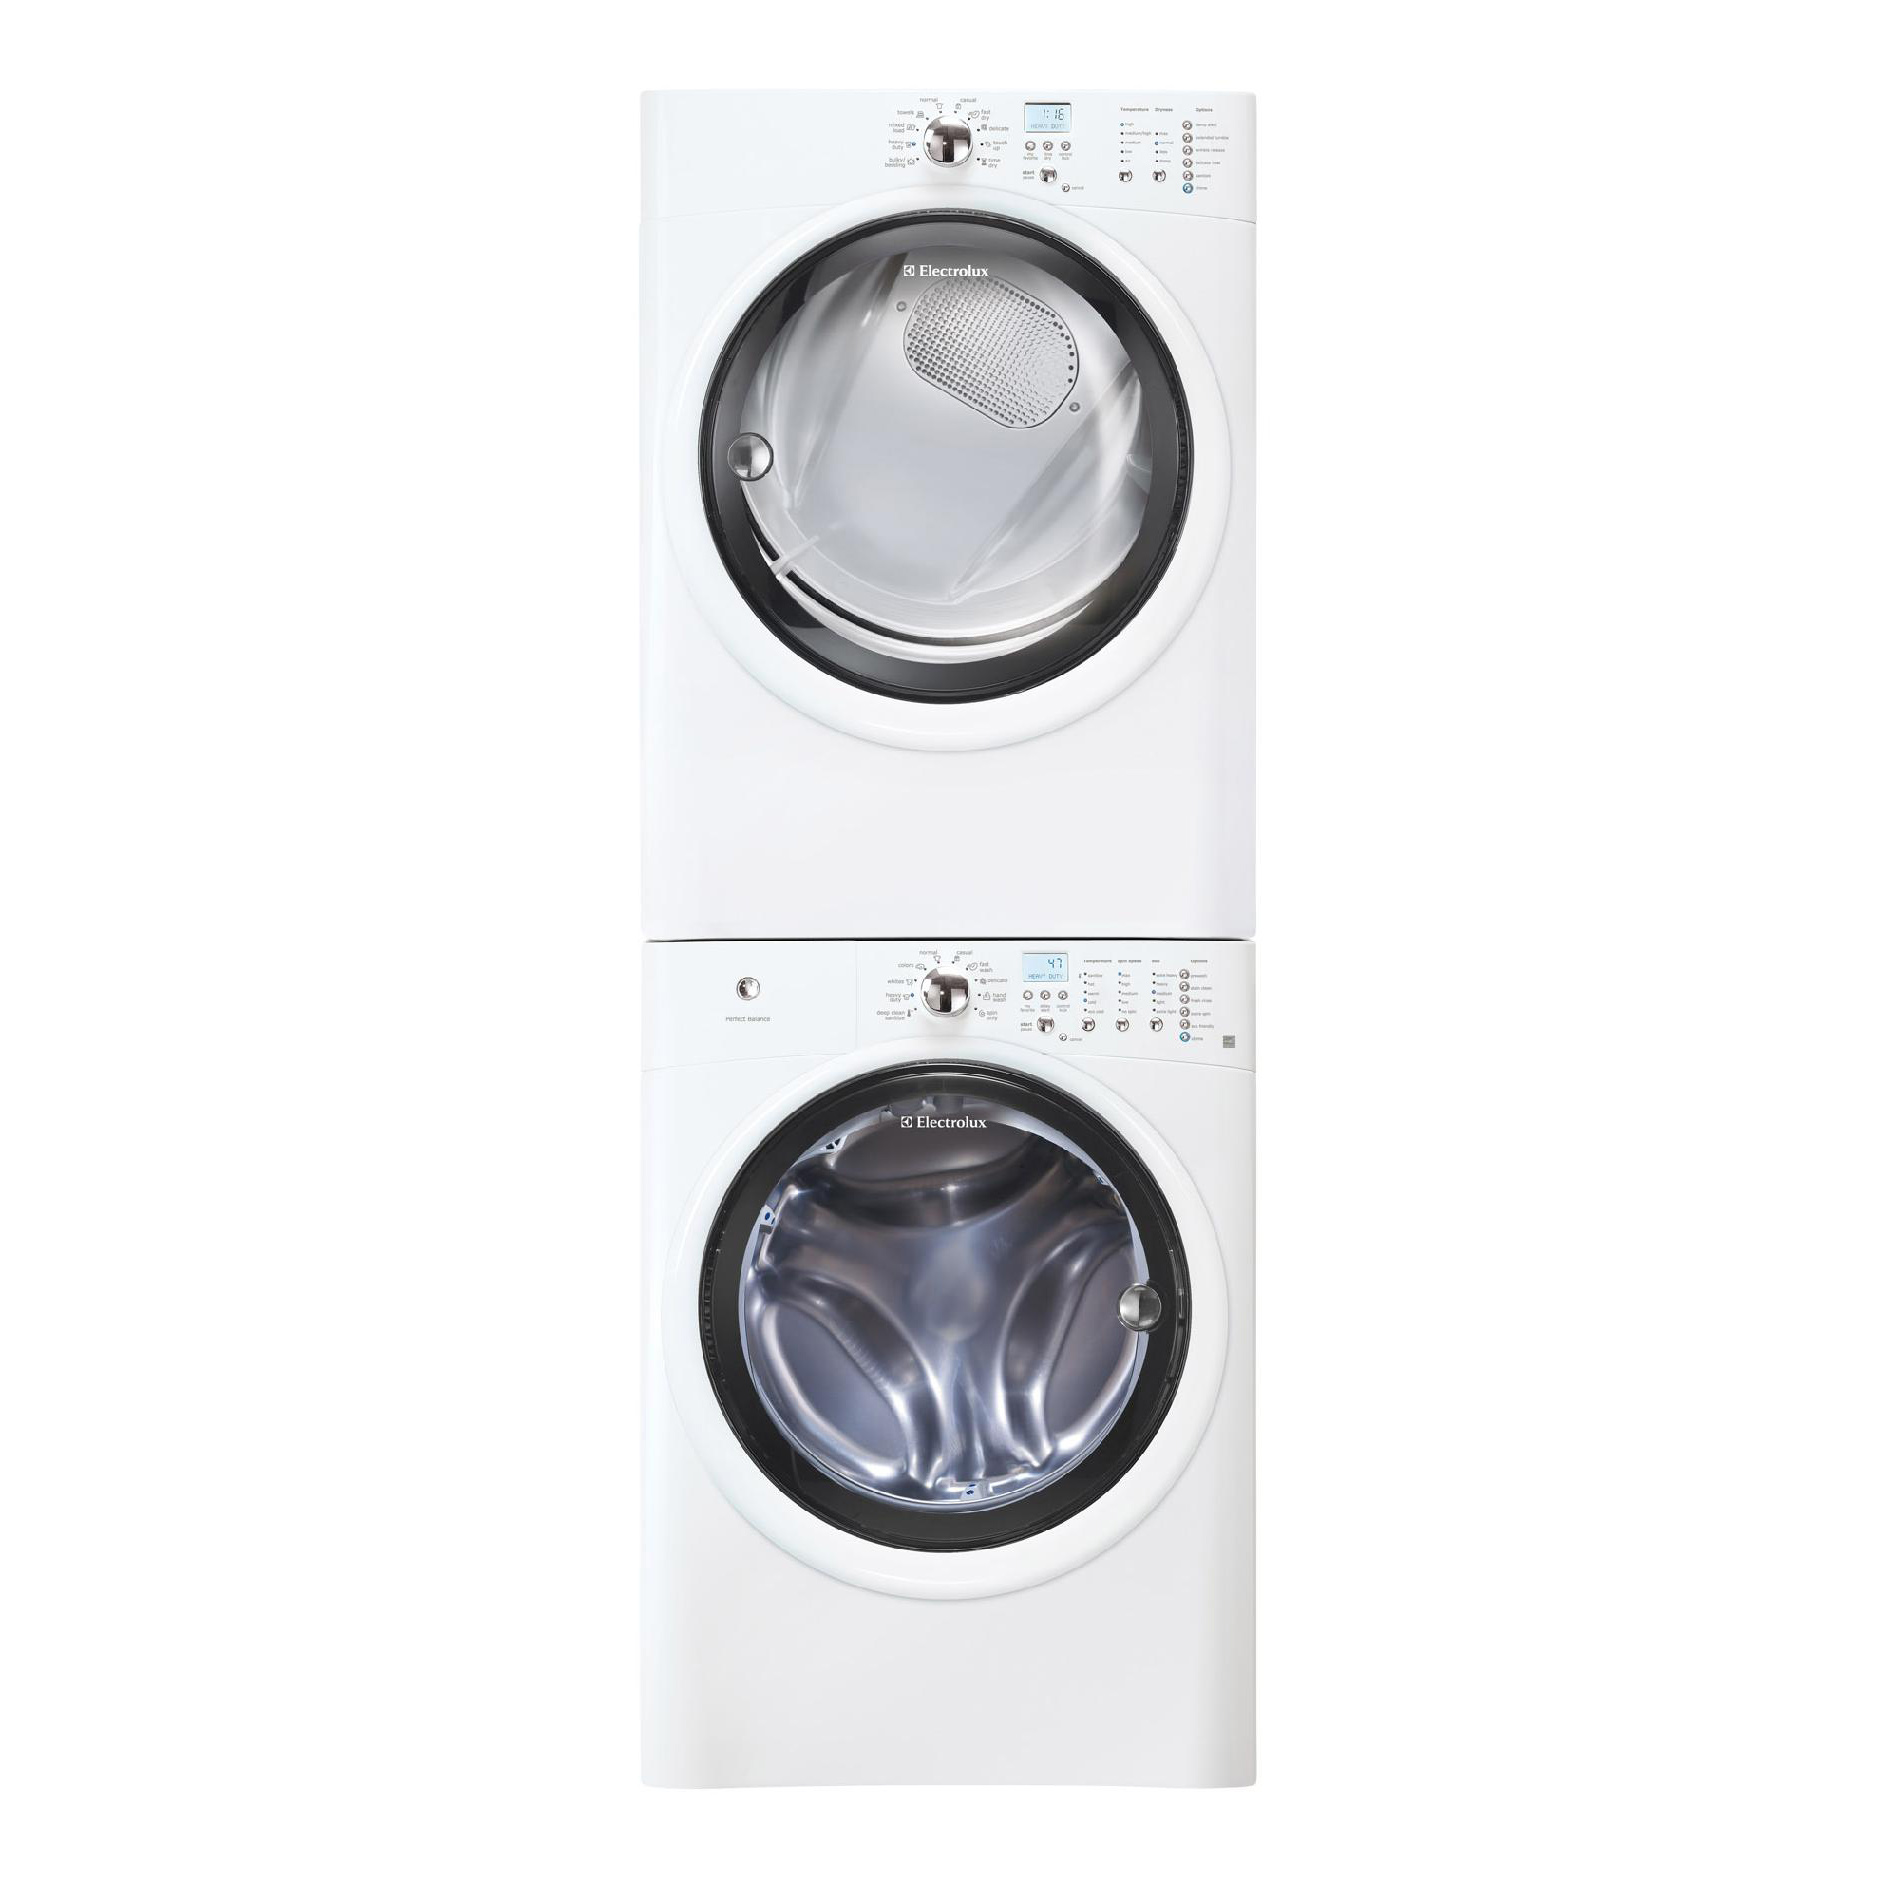 Electrolux EIED50LIW 8.0 cu. ft. Electric Dryer w/ IQ-Touch™ Controls - Island White